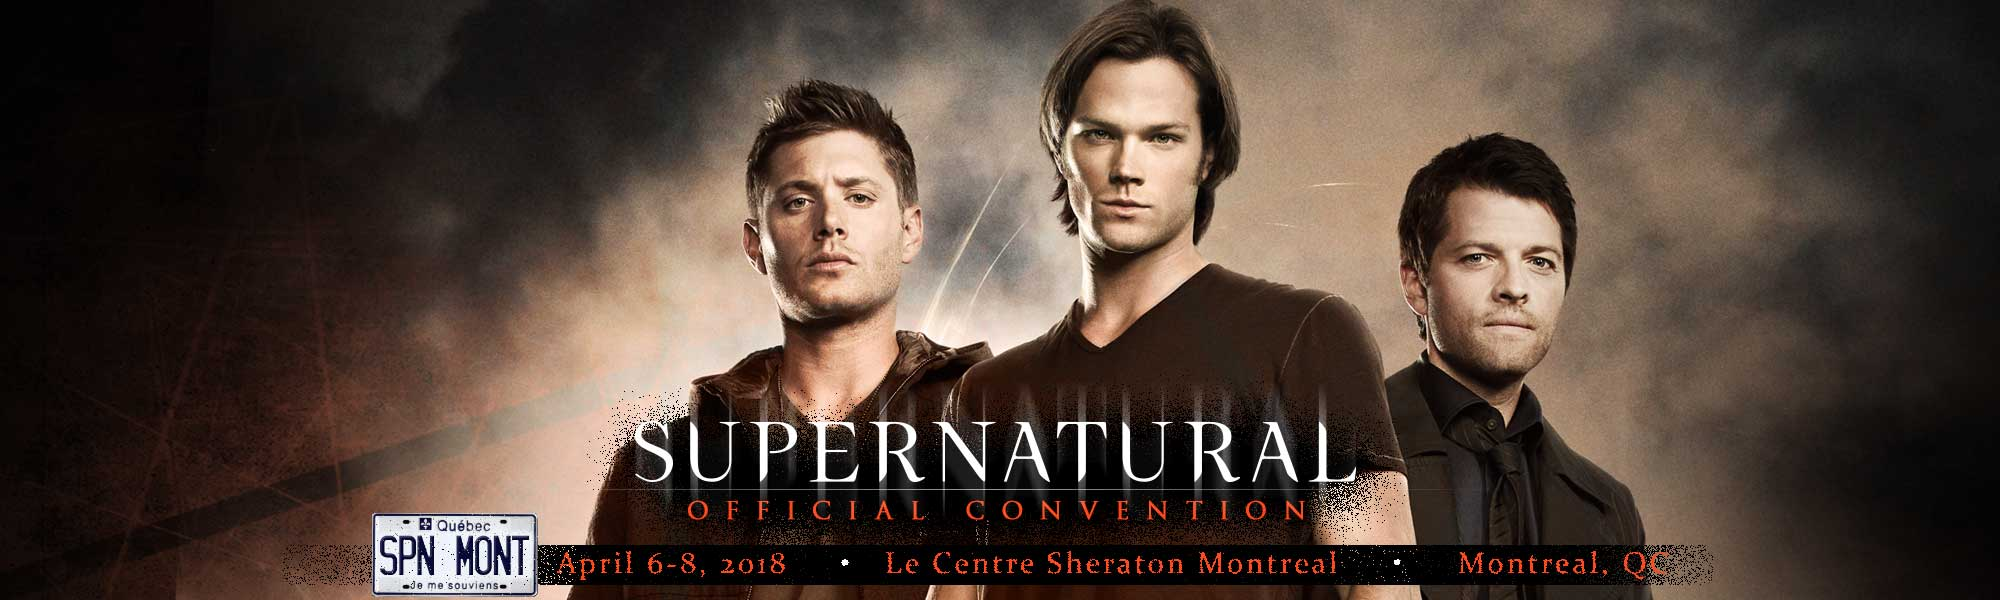 Surnaturel (Supernatural) Convention Montréal 2018